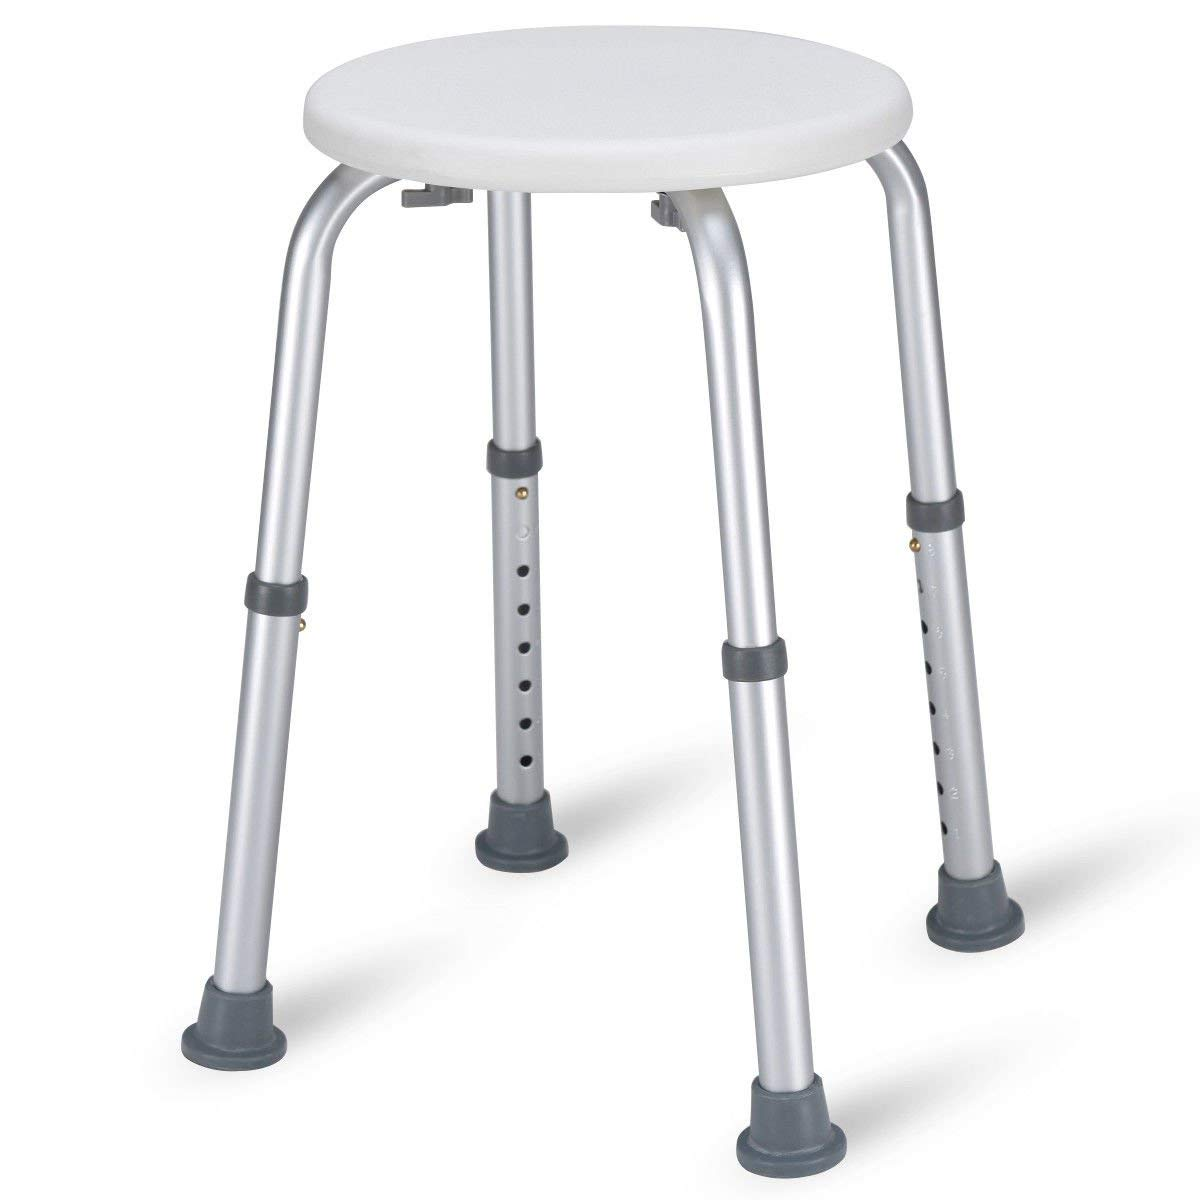 Cheap Shower Seat Height, find Shower Seat Height deals on line at ...